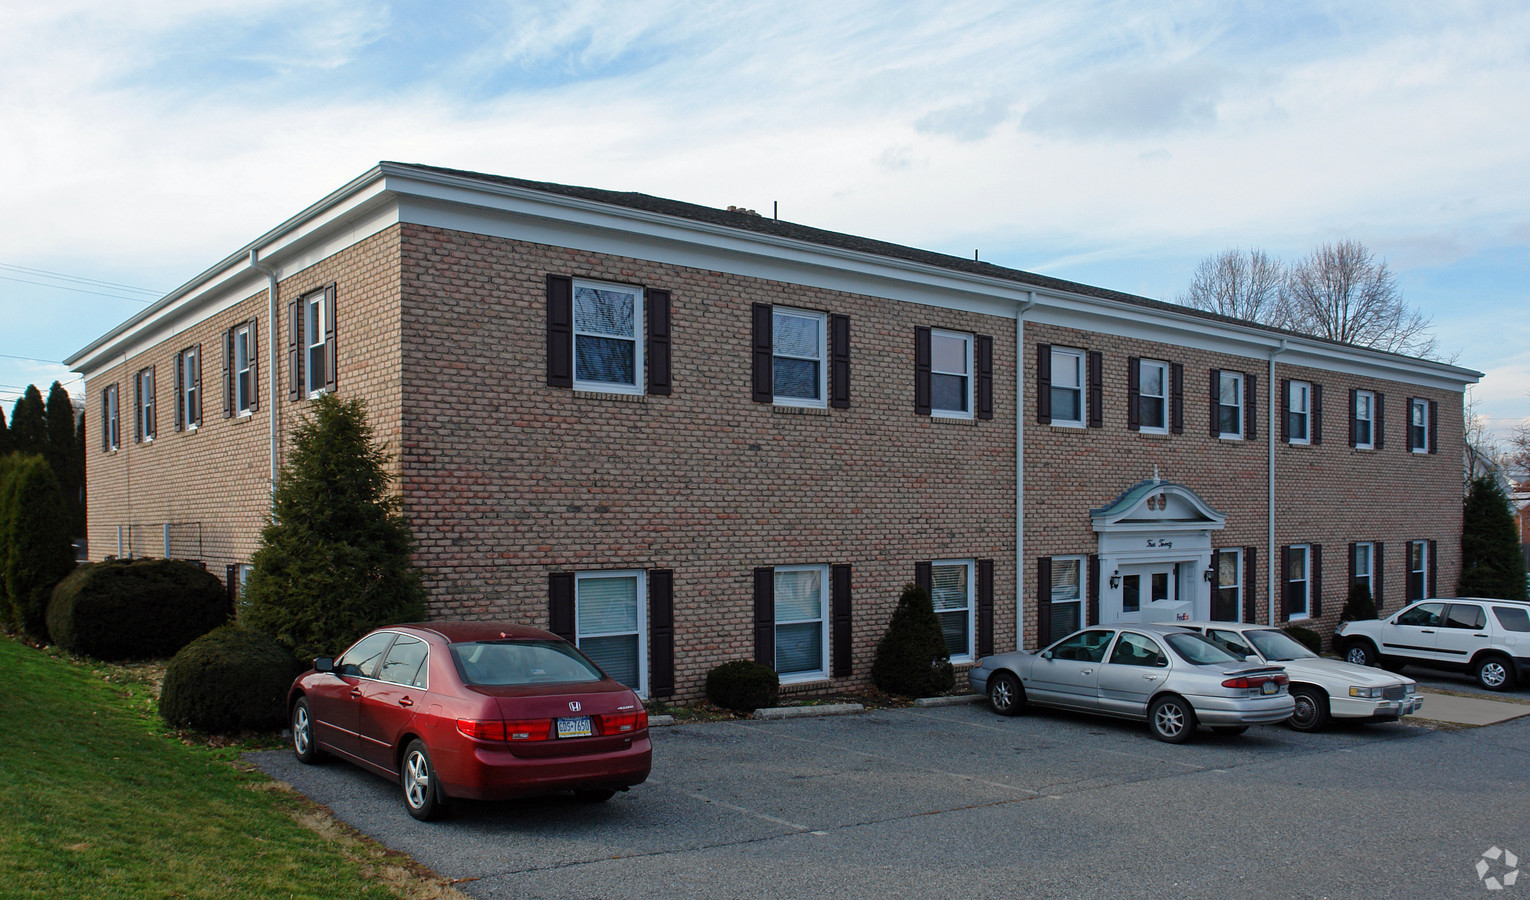 420 N Park Road in Wyomissing PA is a commercial property with office space available for lease. Contact Kent Wrobel, commercial realtor in Berks County, PA to learn more.